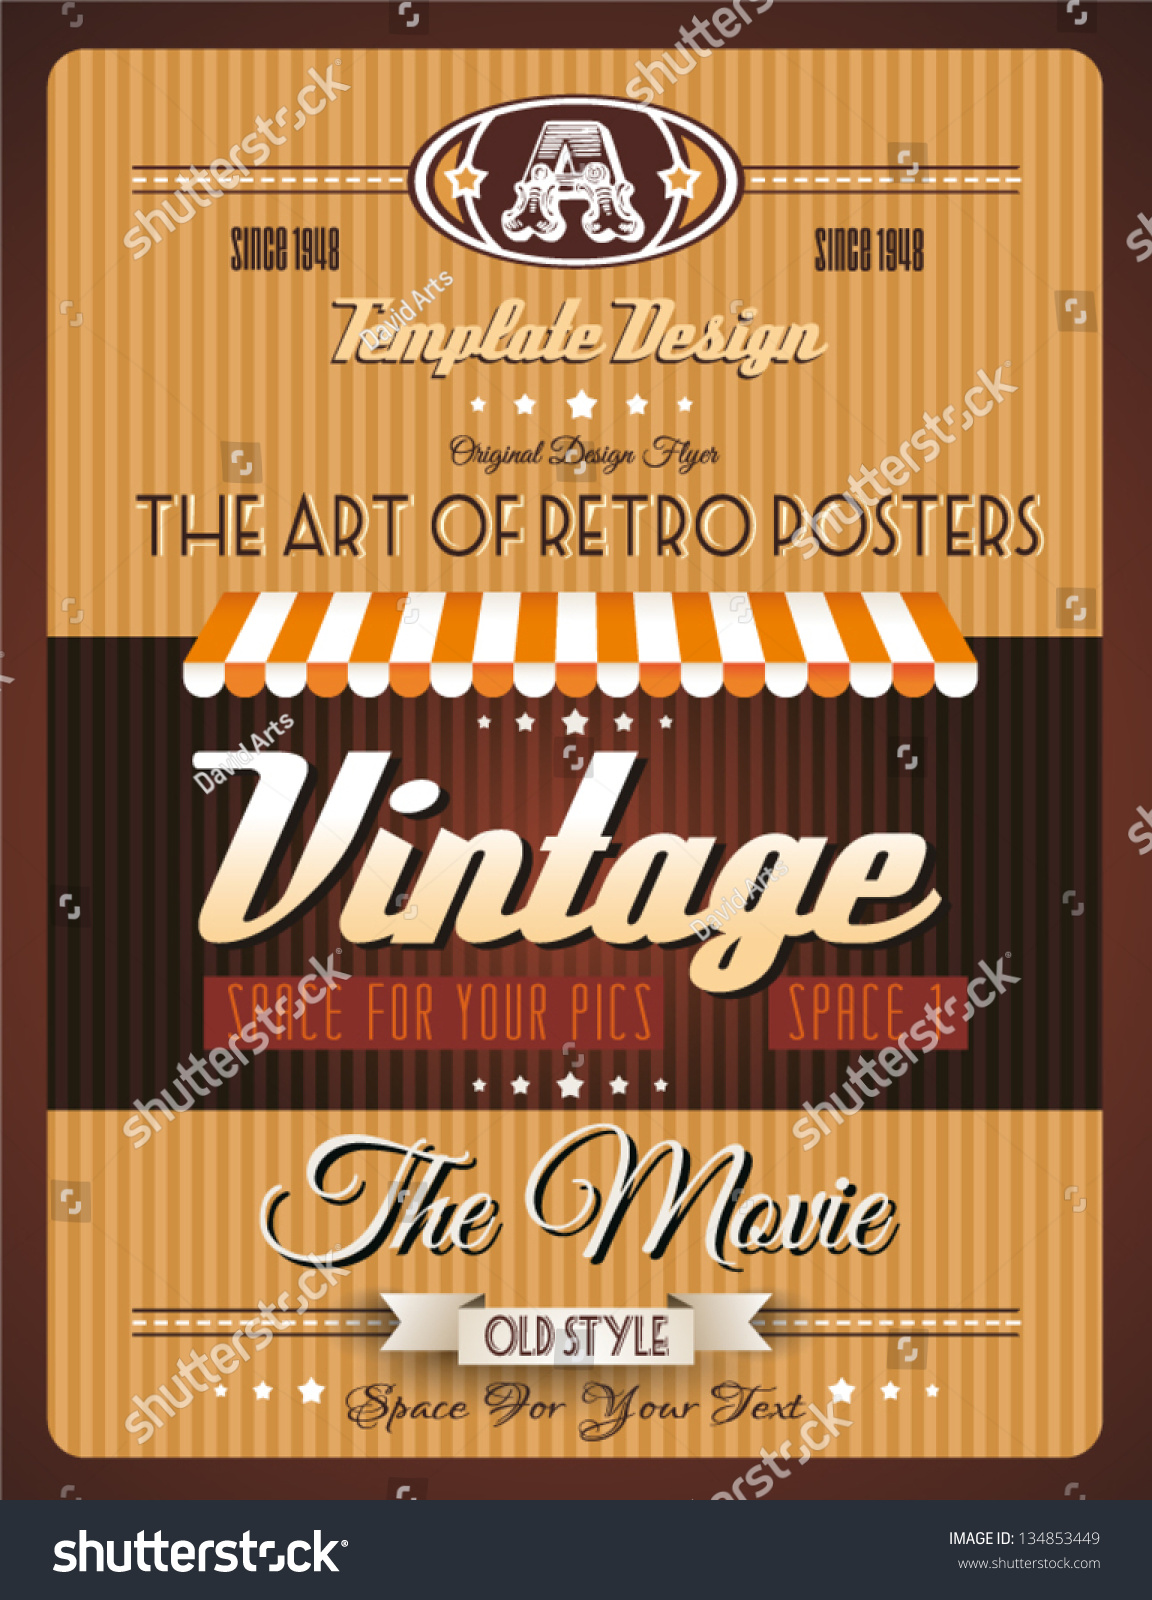 Old Book Cover Posters : Vintage retro page template for a variety of purposes